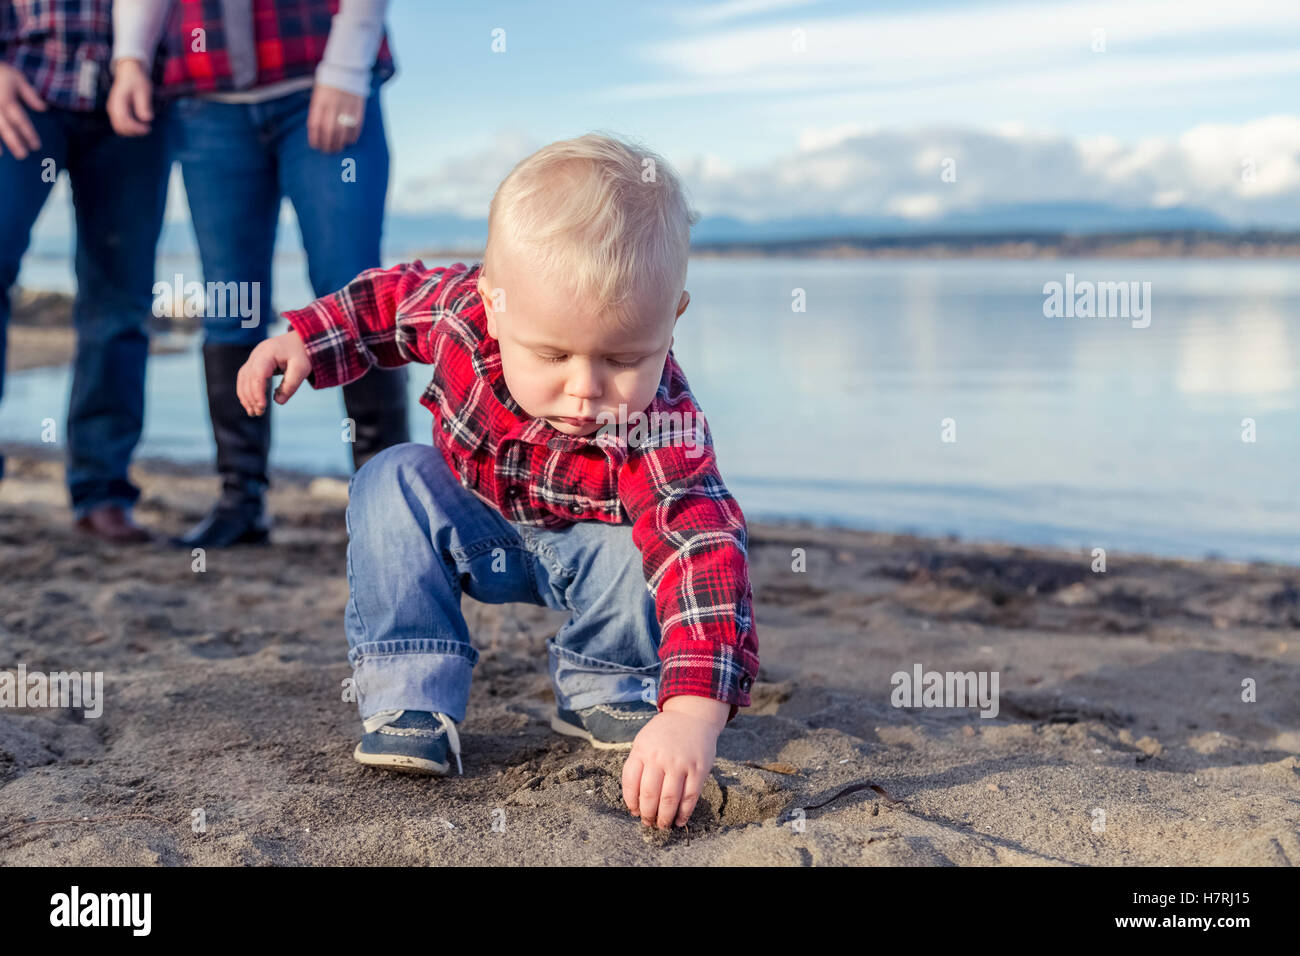 A young toddler gets his hands dirty playing with sand on the beach while his parents look on from the background; - Stock Image